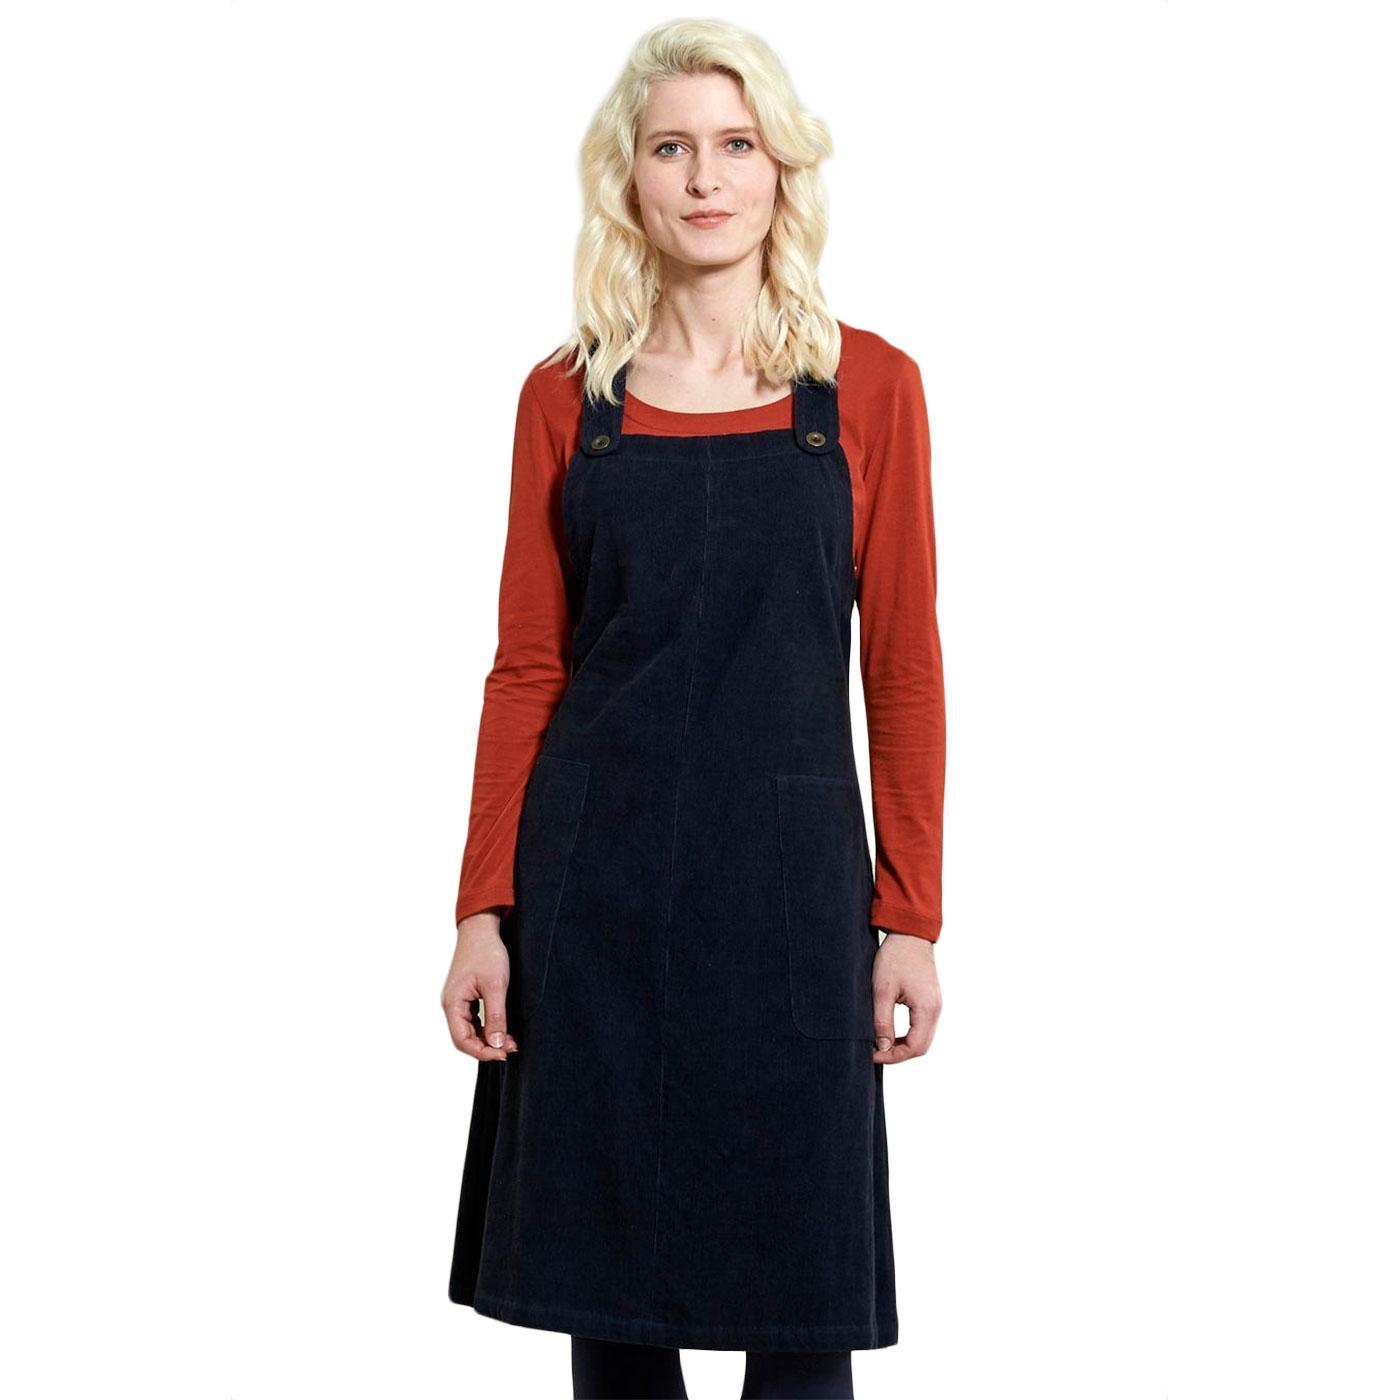 Dungaree NOMADS 60s Retro Cord Dress In Navy Blue